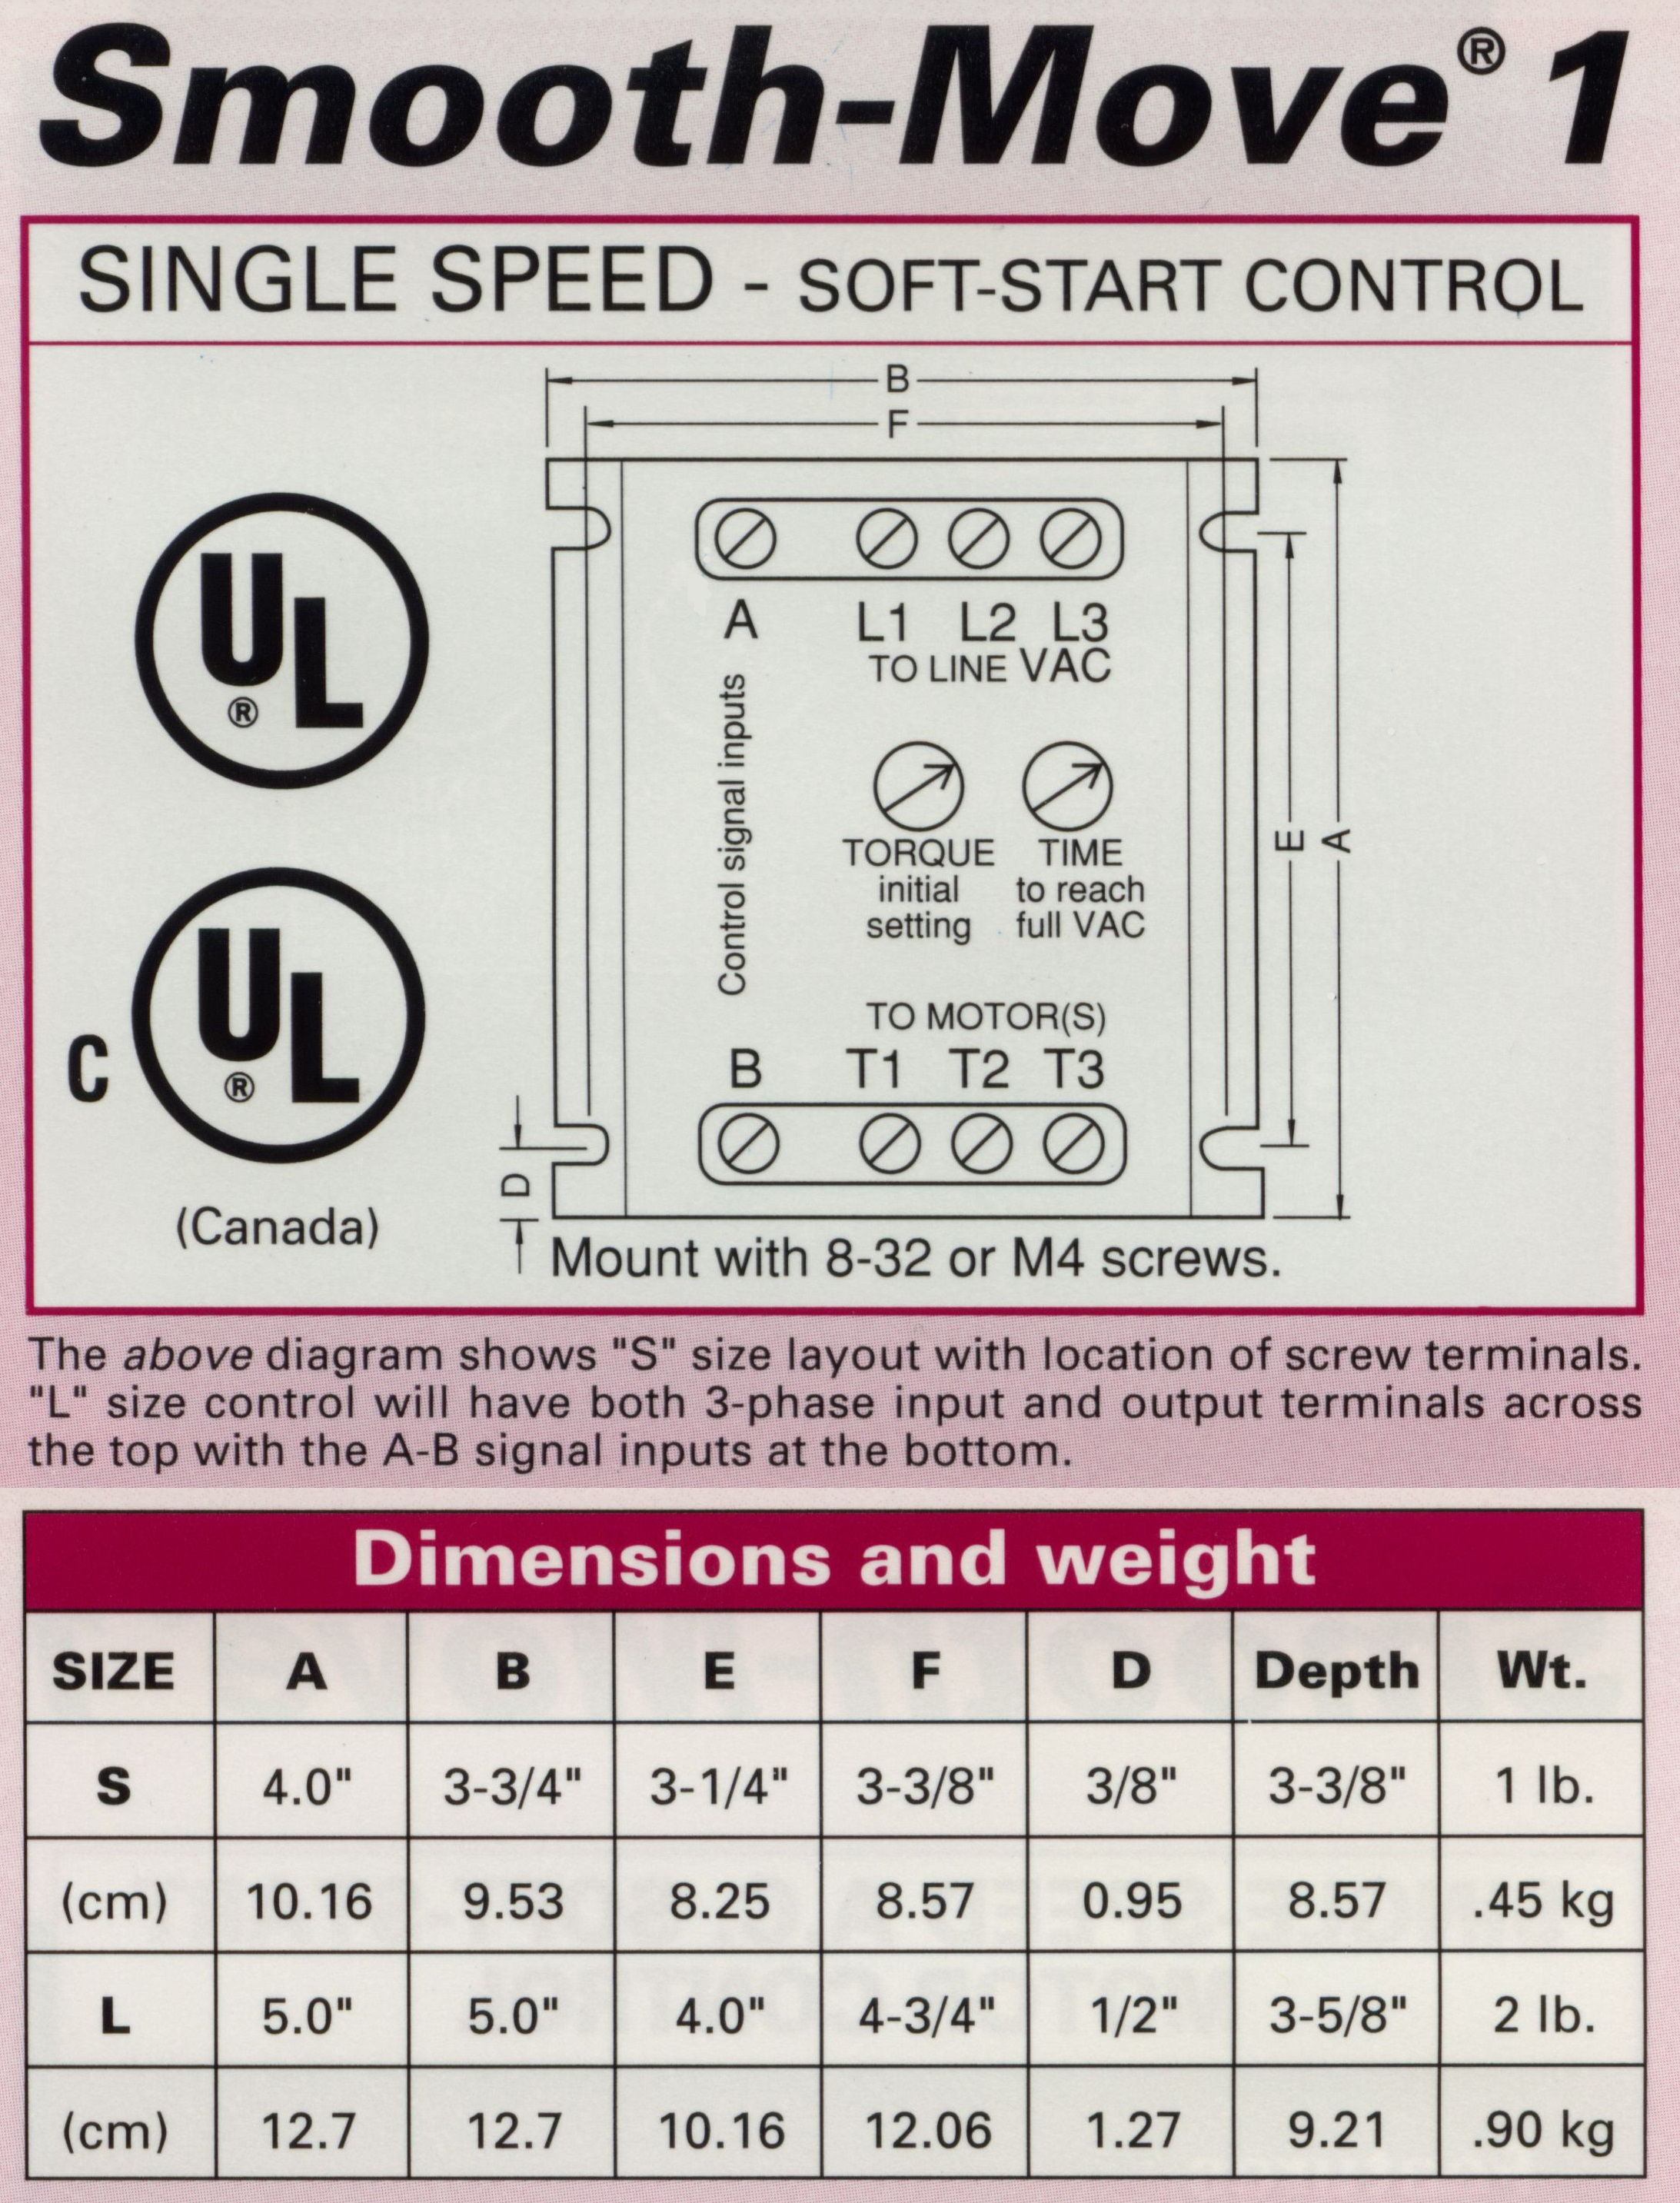 Smooth Move 1 4 10 Amps Power Electronics Induction Motor Wiring Diagram Product Description